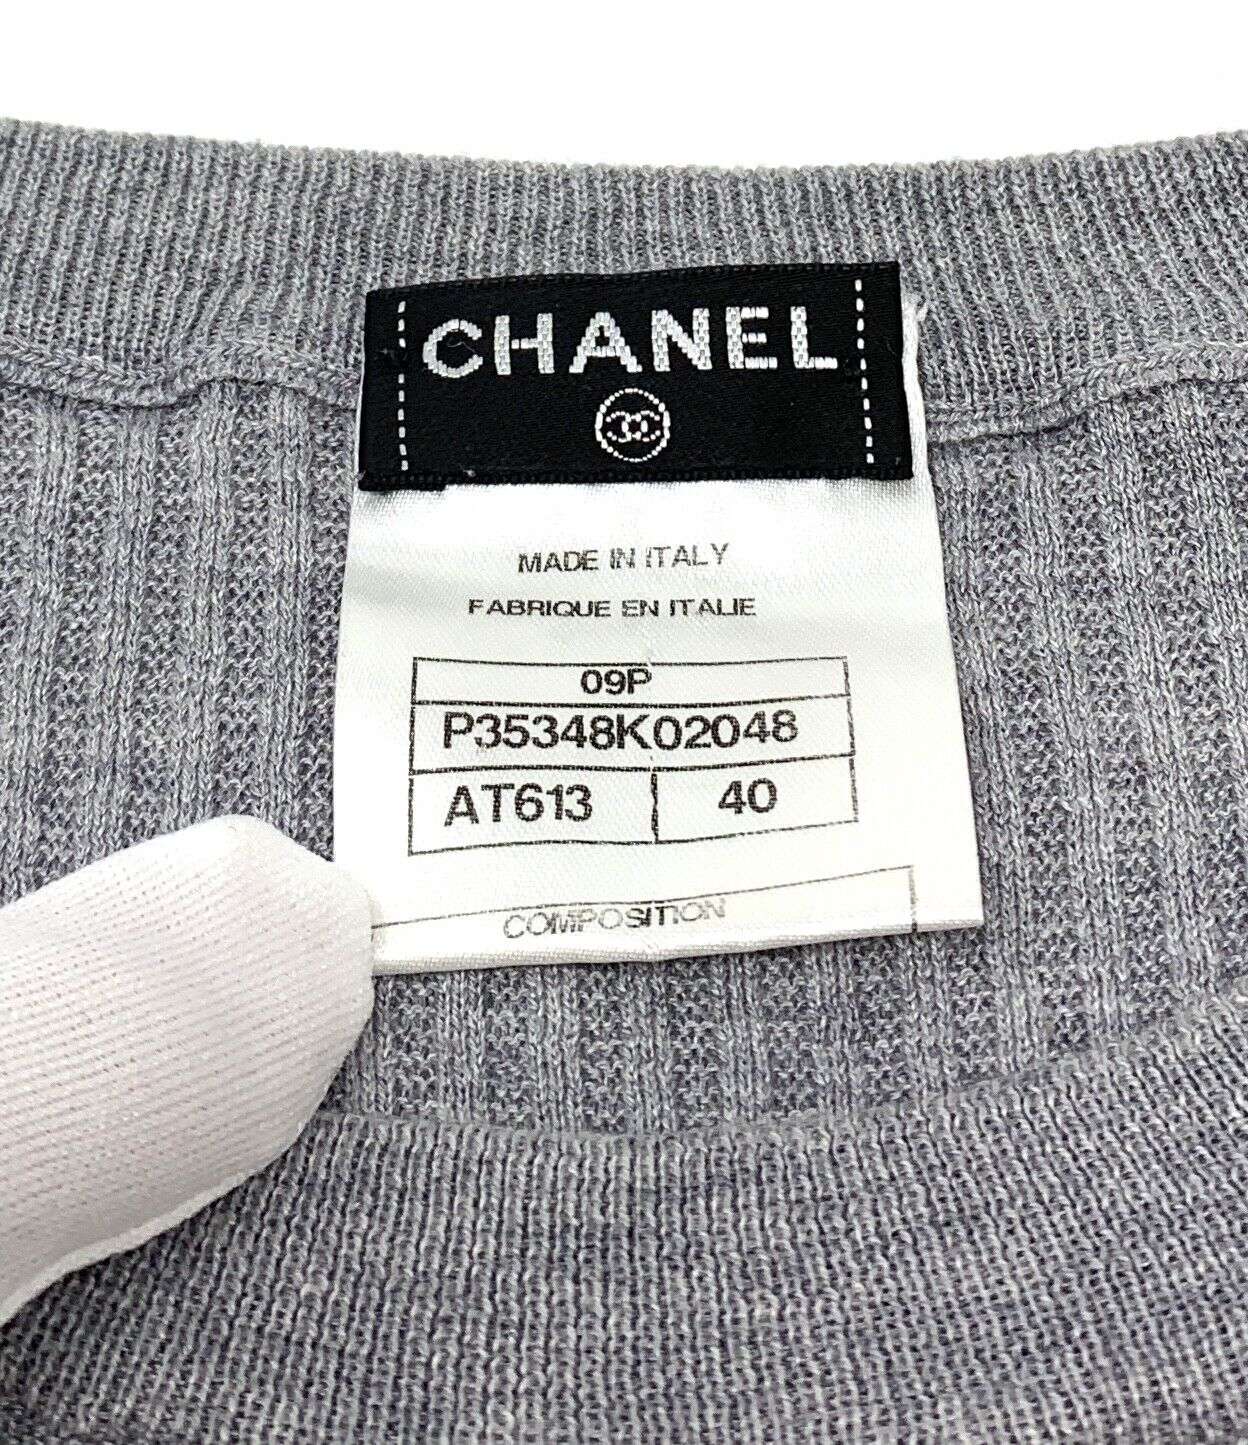 Authentique chanel 09p coco mark logo longueur genou #40 coton gris rank ab